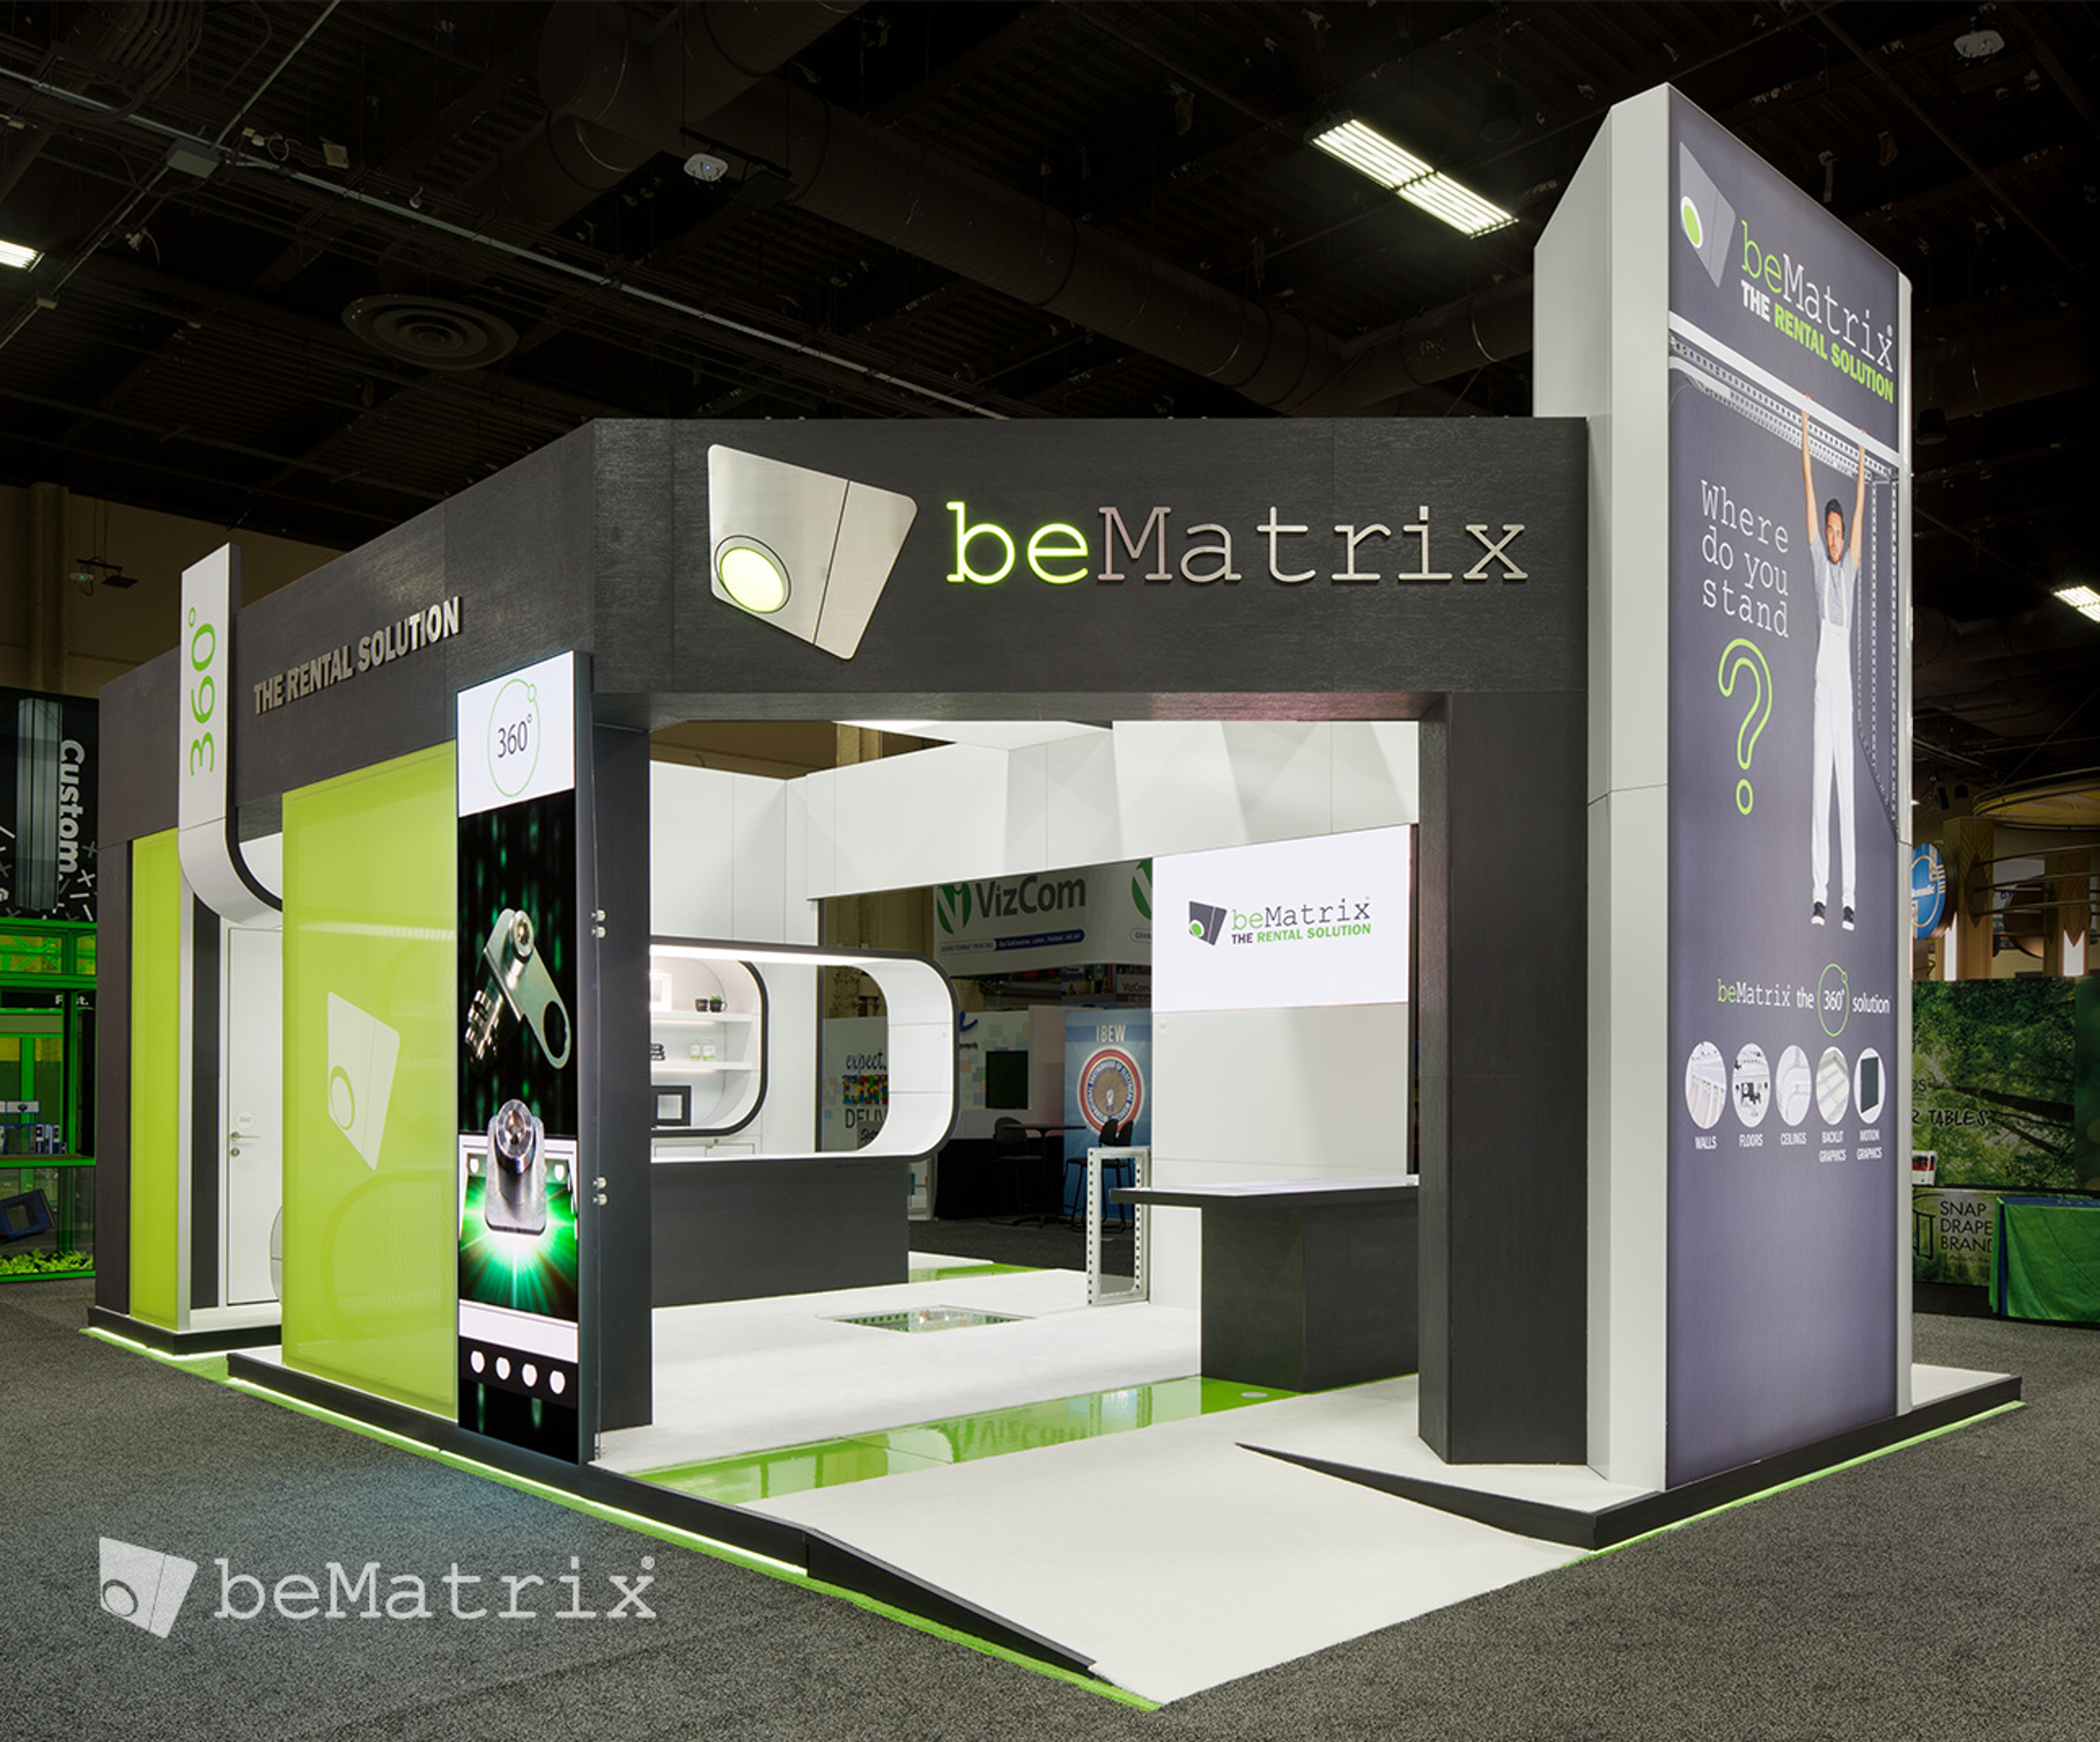 beMatrix USA - ExhibitorLIVE 2017 usa